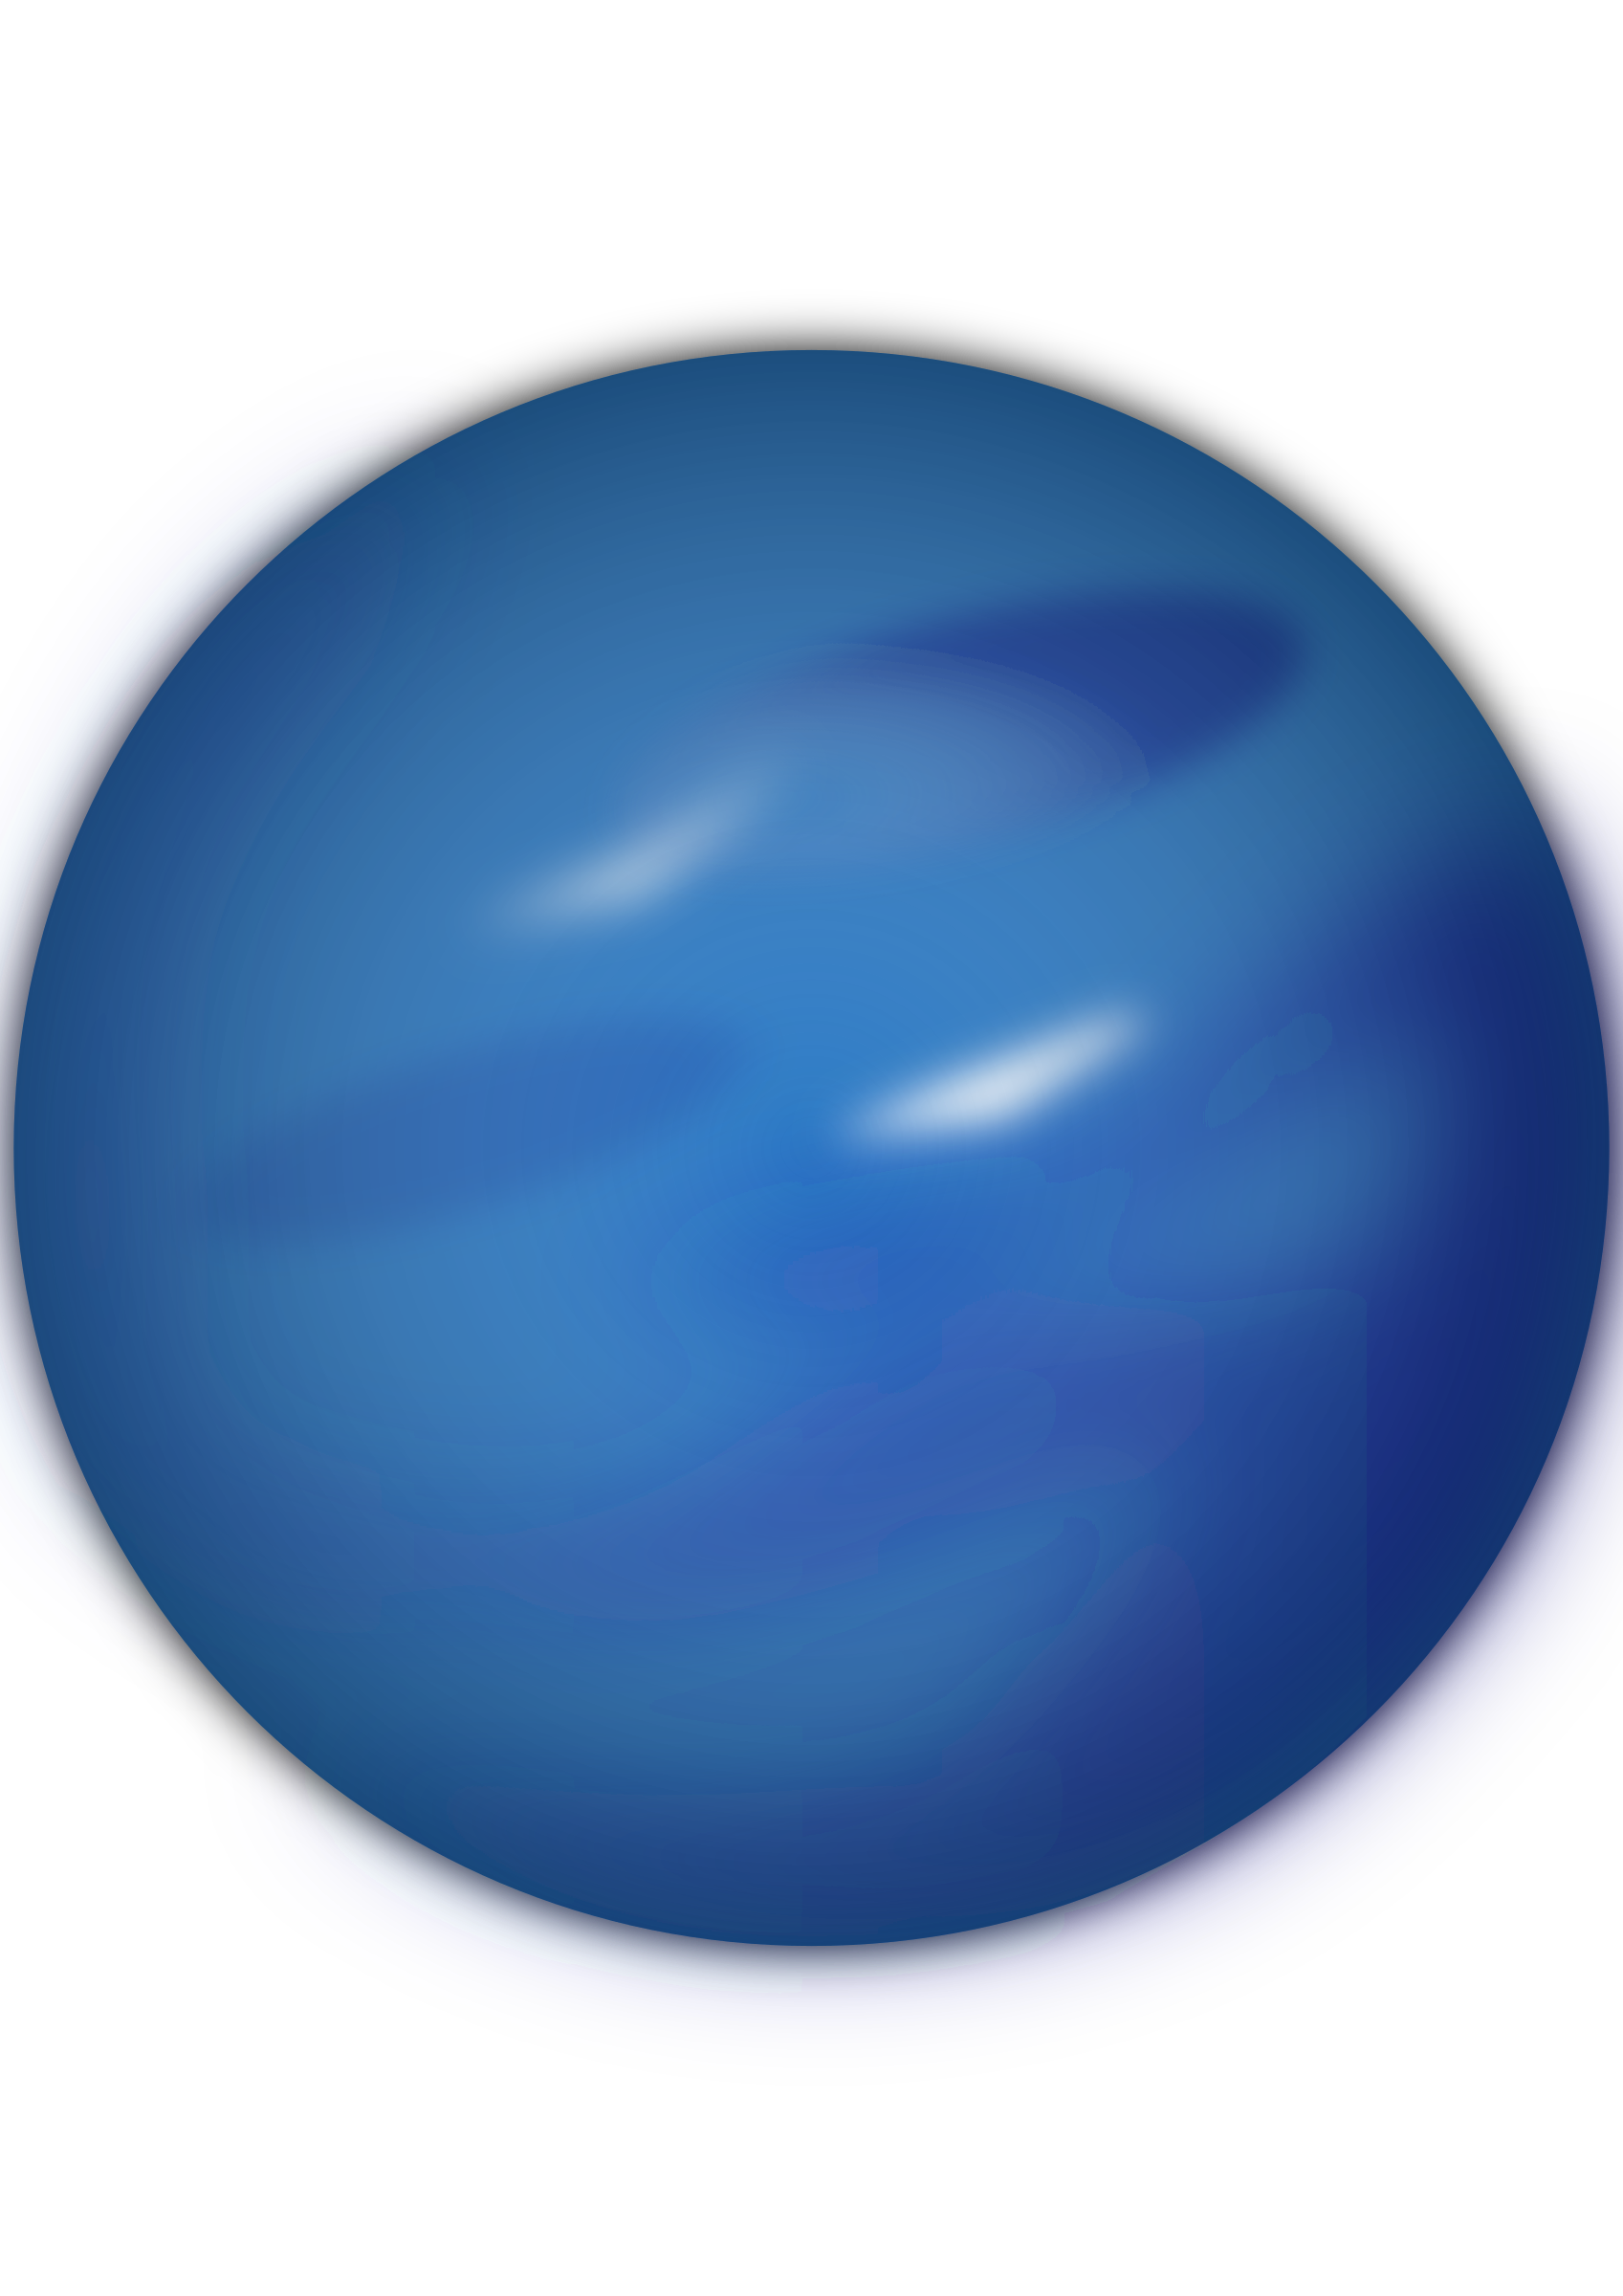 neptune planet png - photo #15